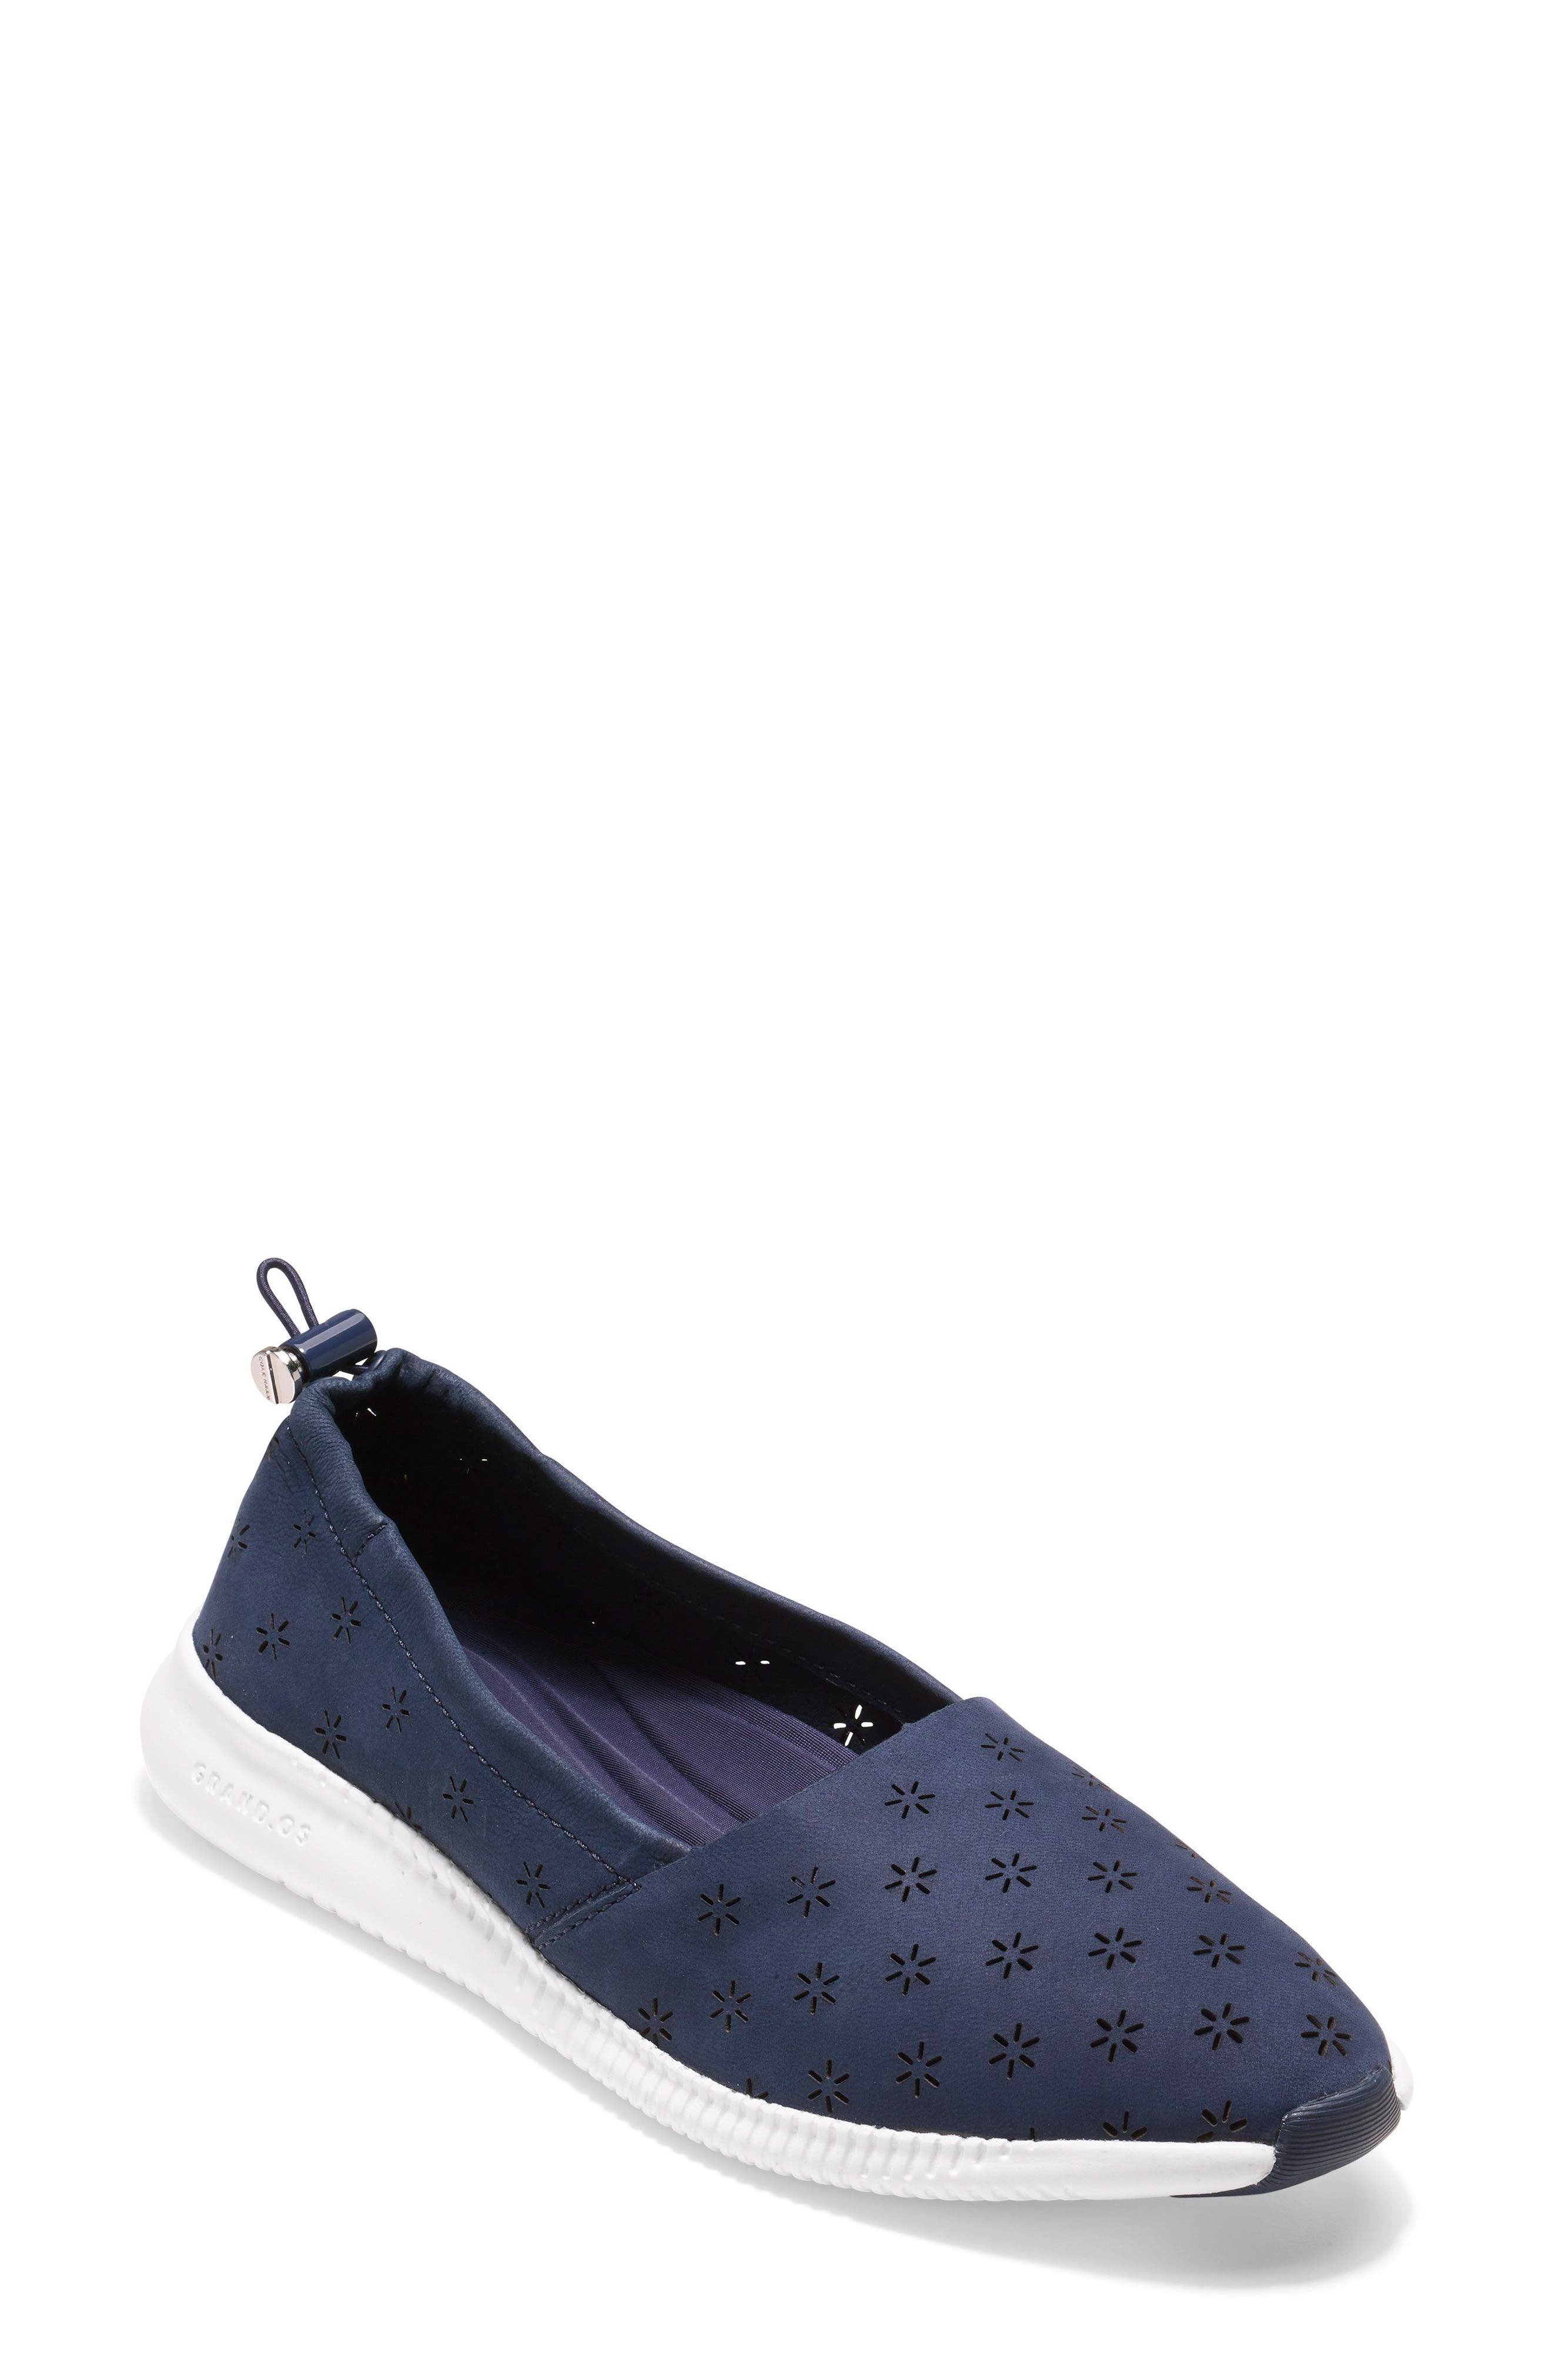 Studiogrand Perforated Slip-on,                             Main thumbnail 4, color,